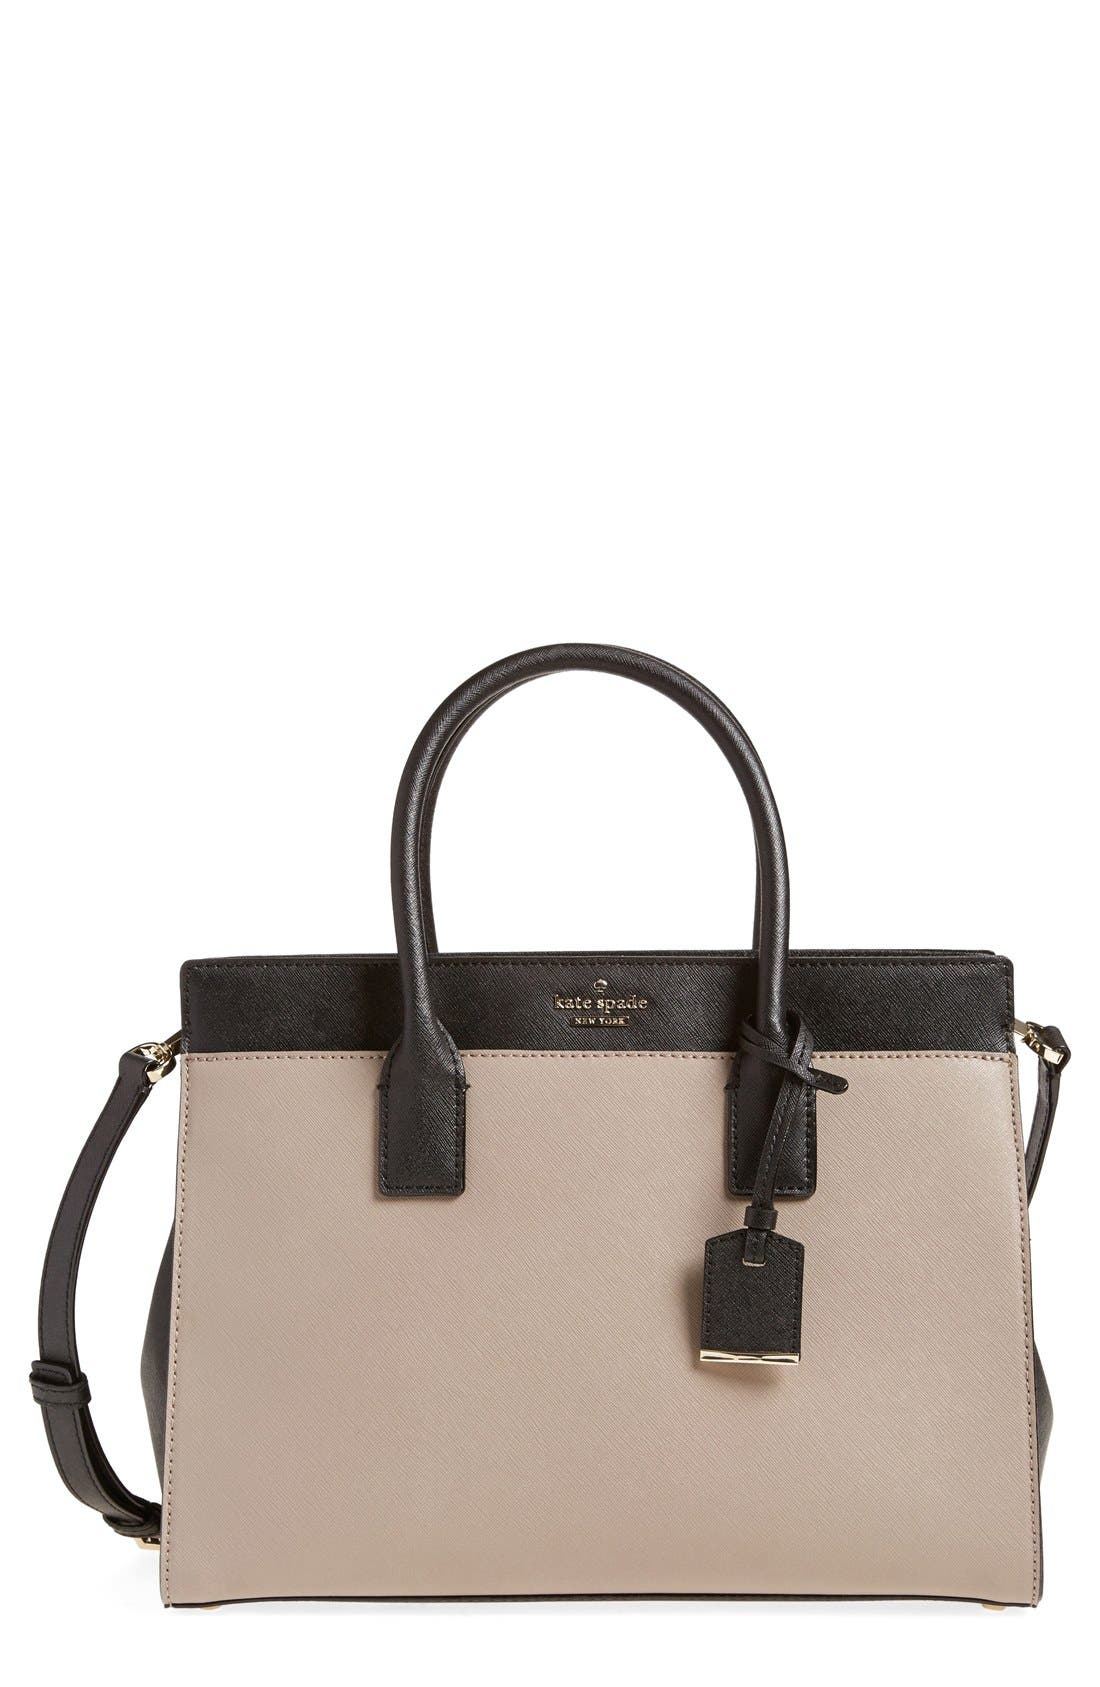 Alternate Image 1 Selected - kate spade new york 'cameron street - candace' satchel